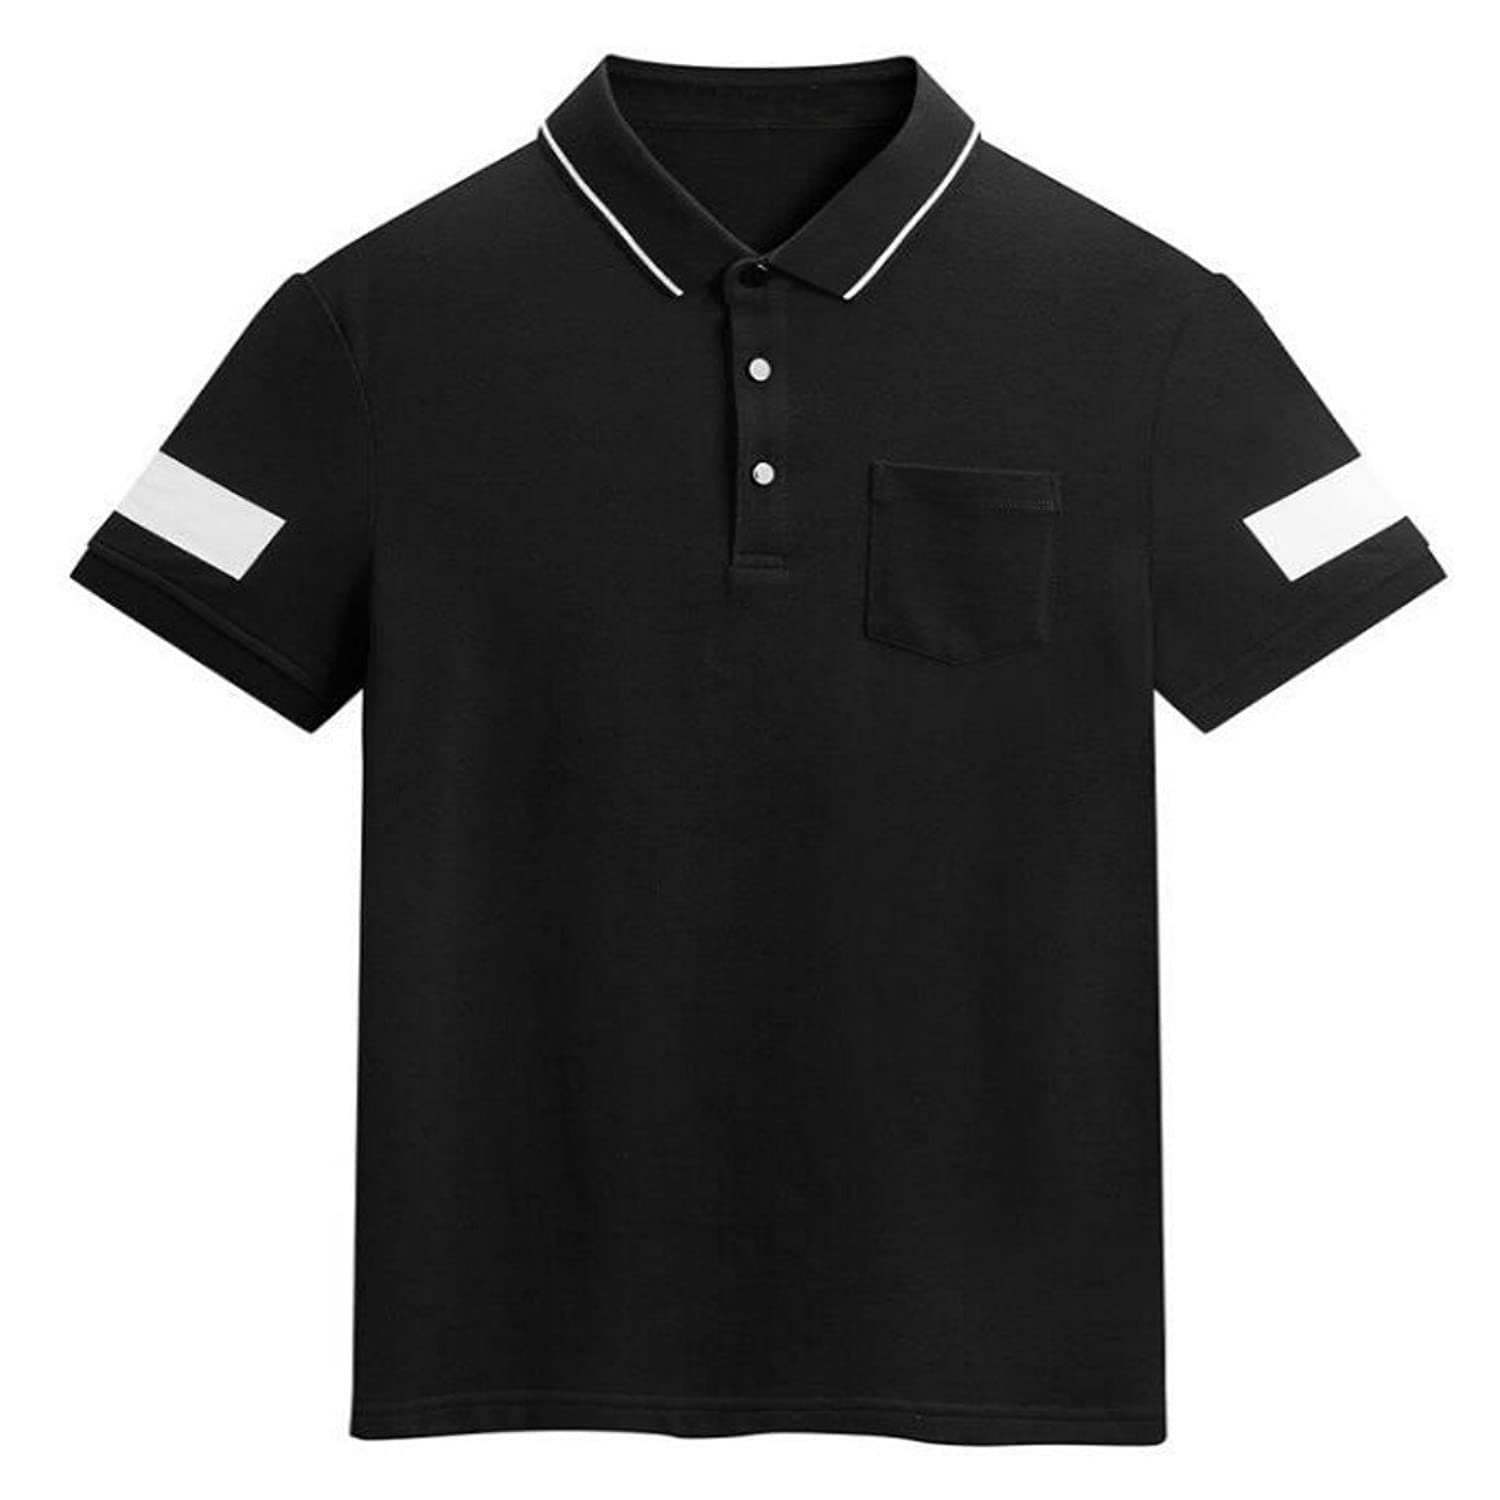 b9666dc7 Feartures:Regular fit,short sleeve,two-button placket,two tone contrast  color,real left front pocket,lightweight, easy dry button down polos